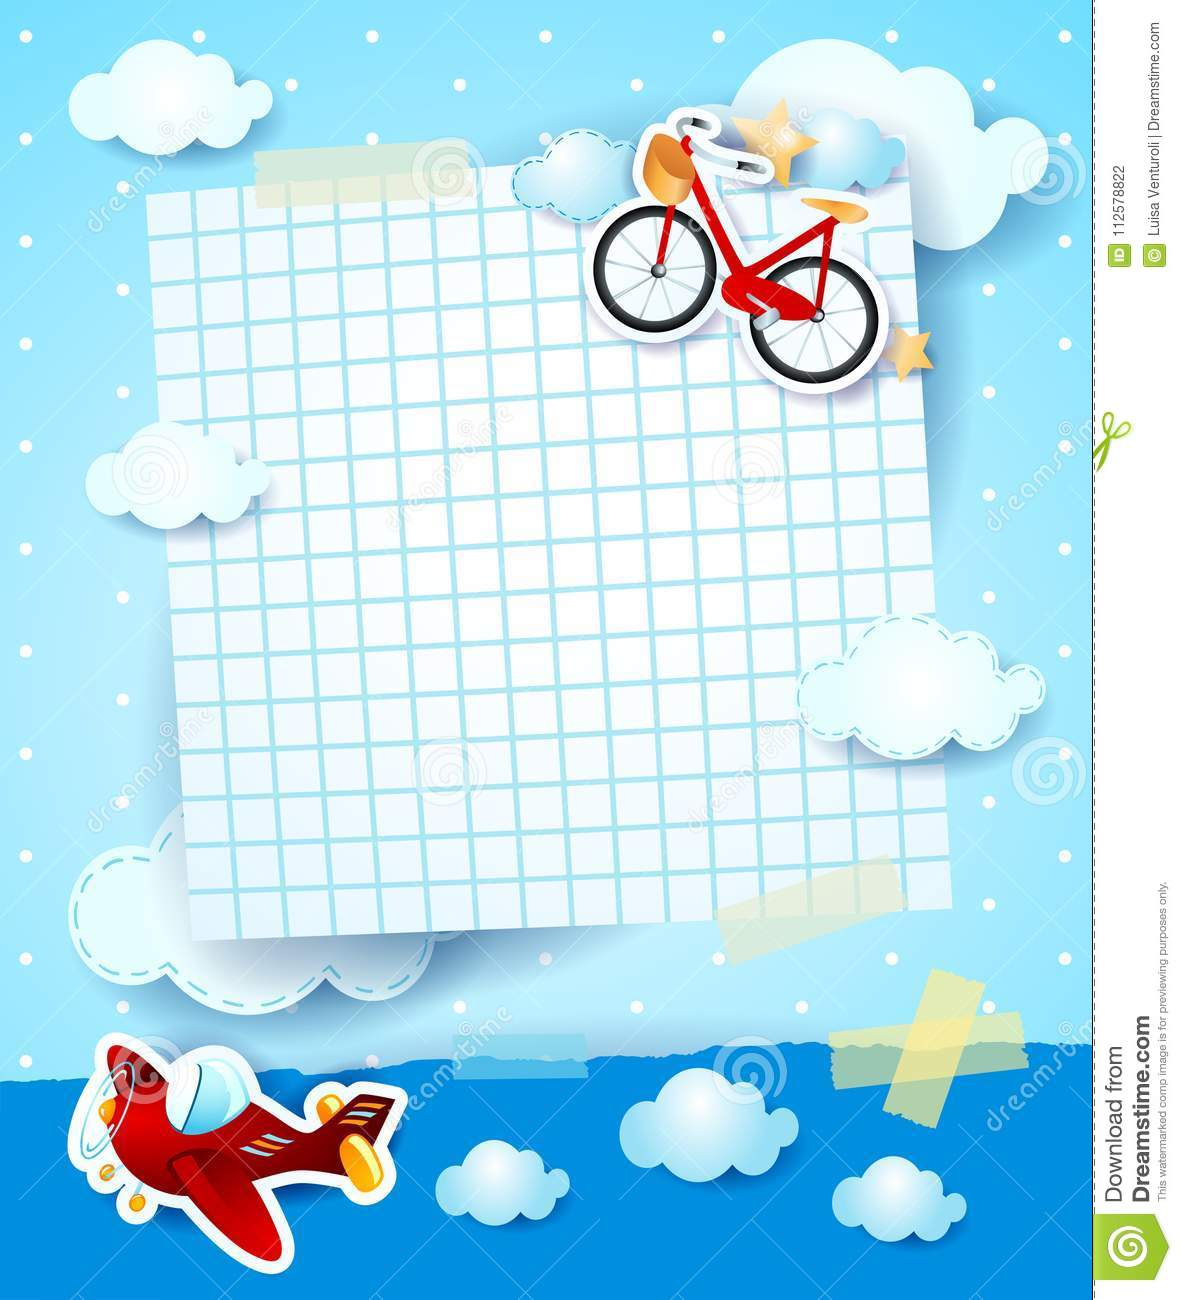 Baby shower invitation with airplane and bike stock vector download baby shower invitation with airplane and bike stock vector illustration of copy arrival filmwisefo